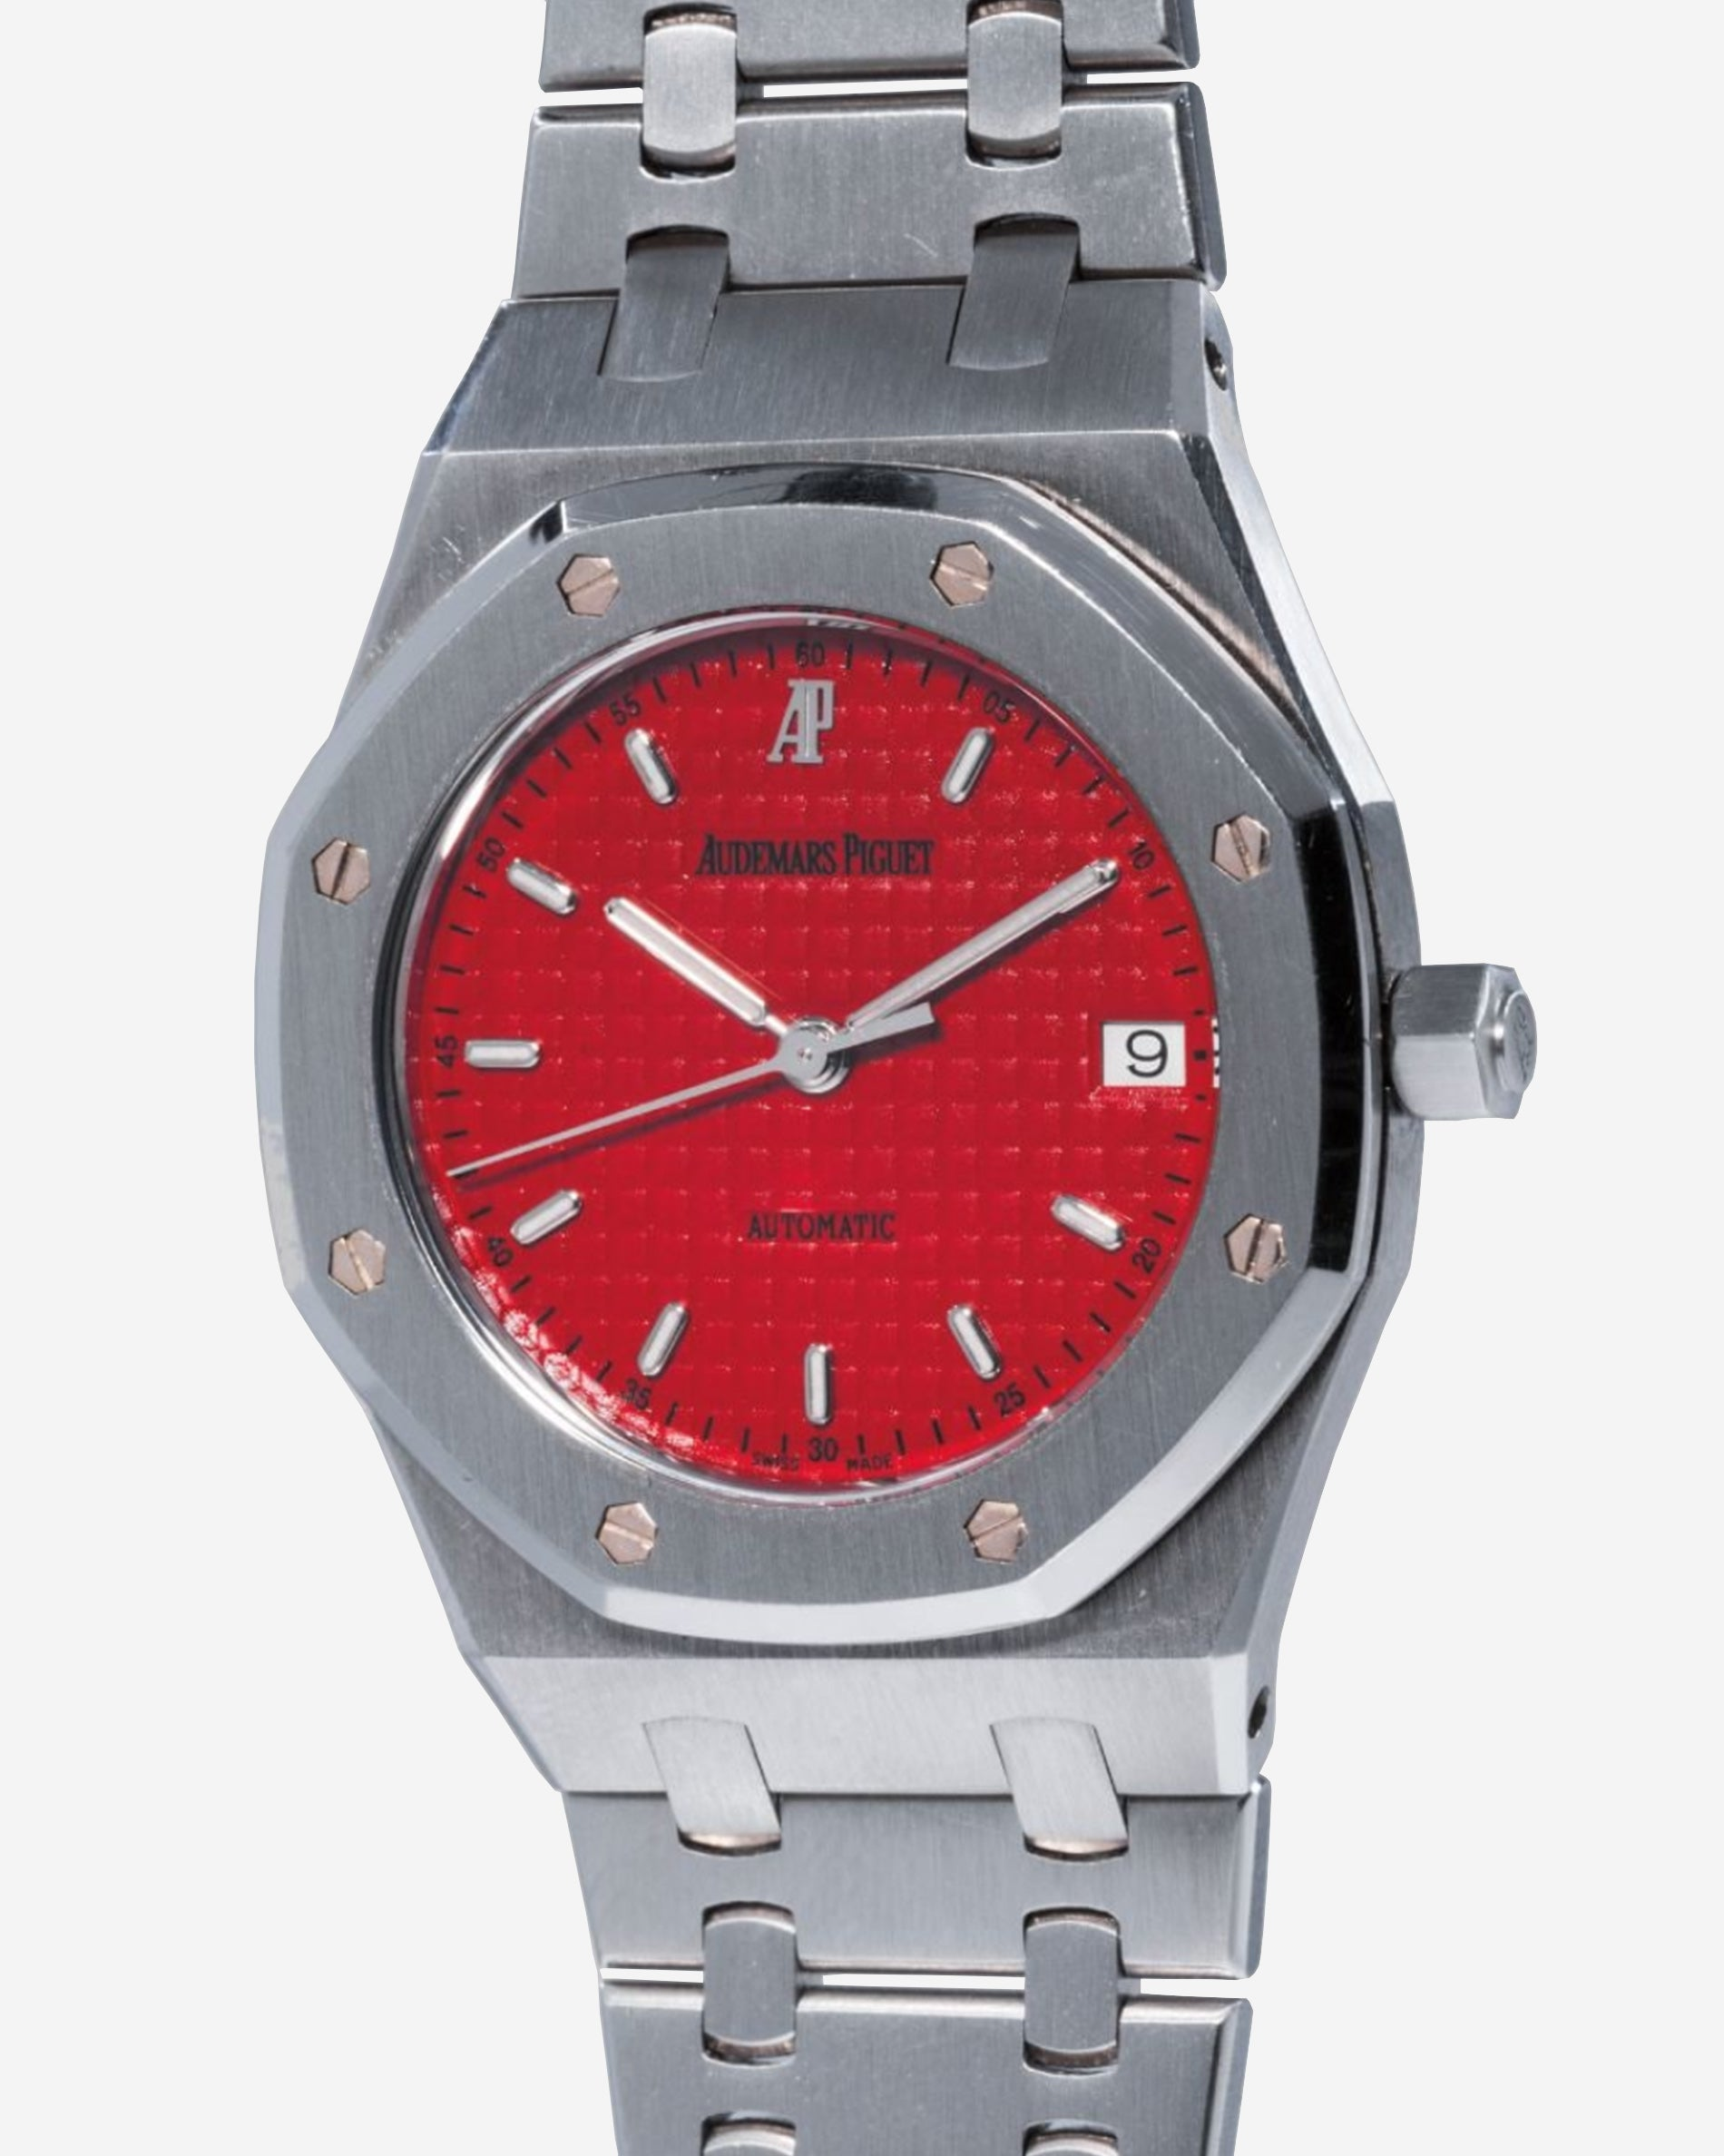 Audemars Piguet Royal Oak 14790 third series with a Ferrari Red dial in stainless steel for A Collected Man London